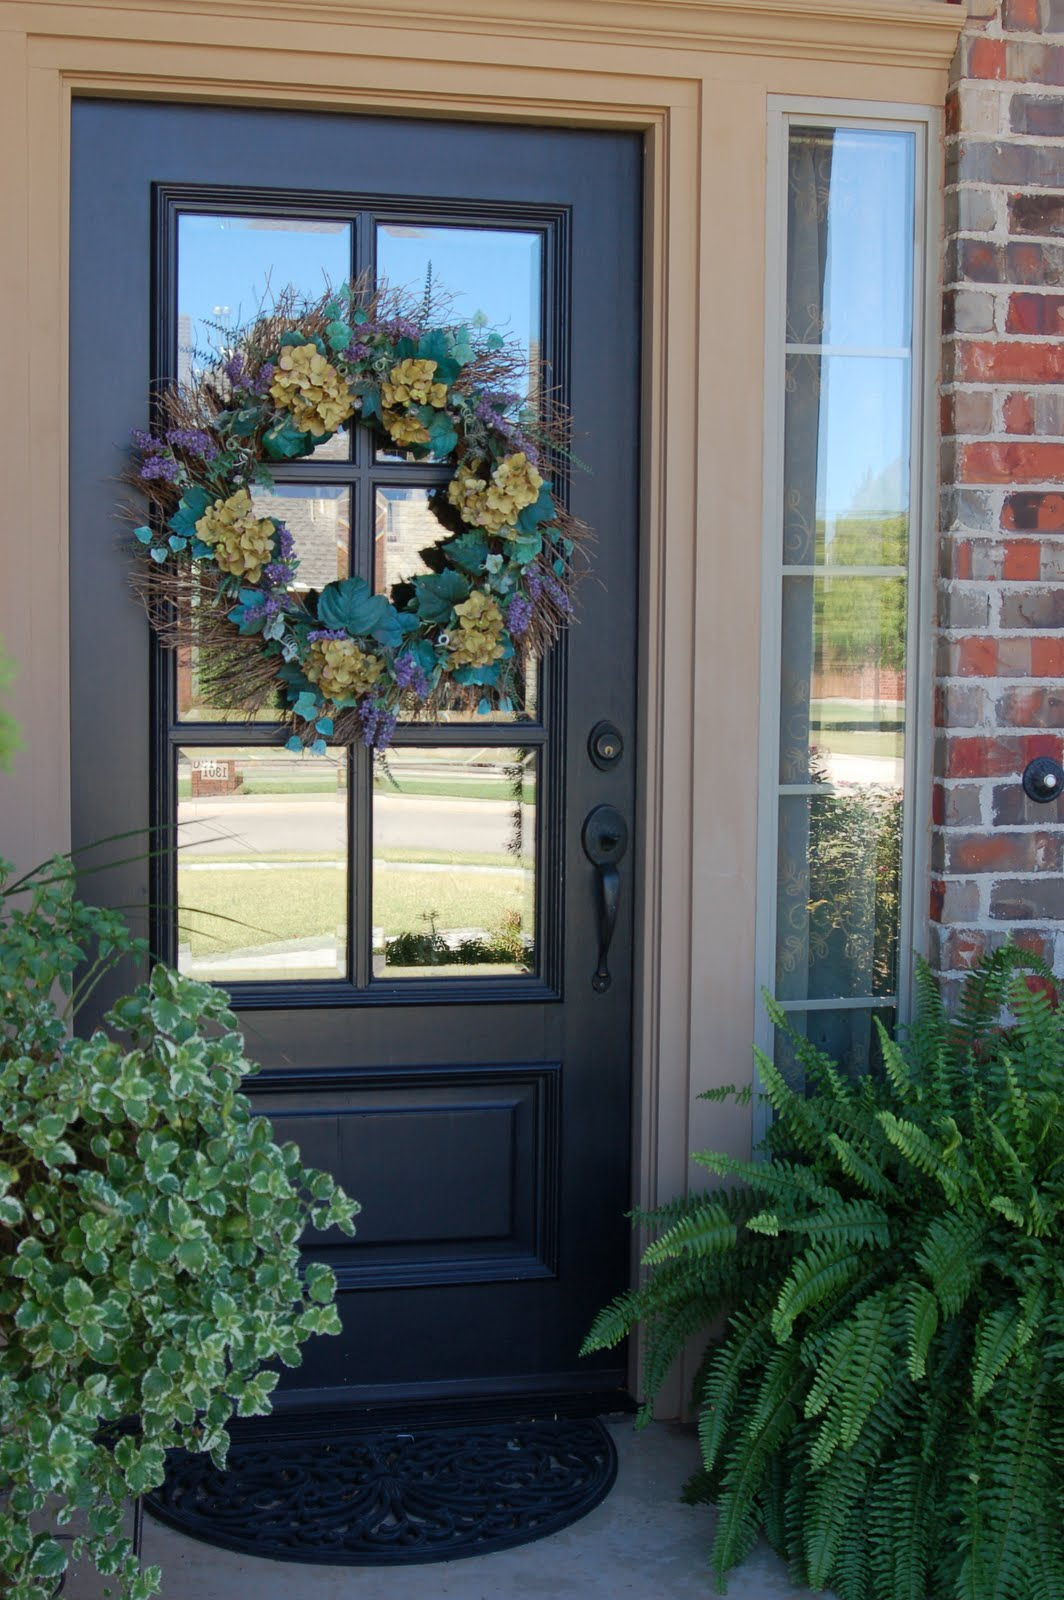 Grey dog designs front door facelift for New front doors for homes